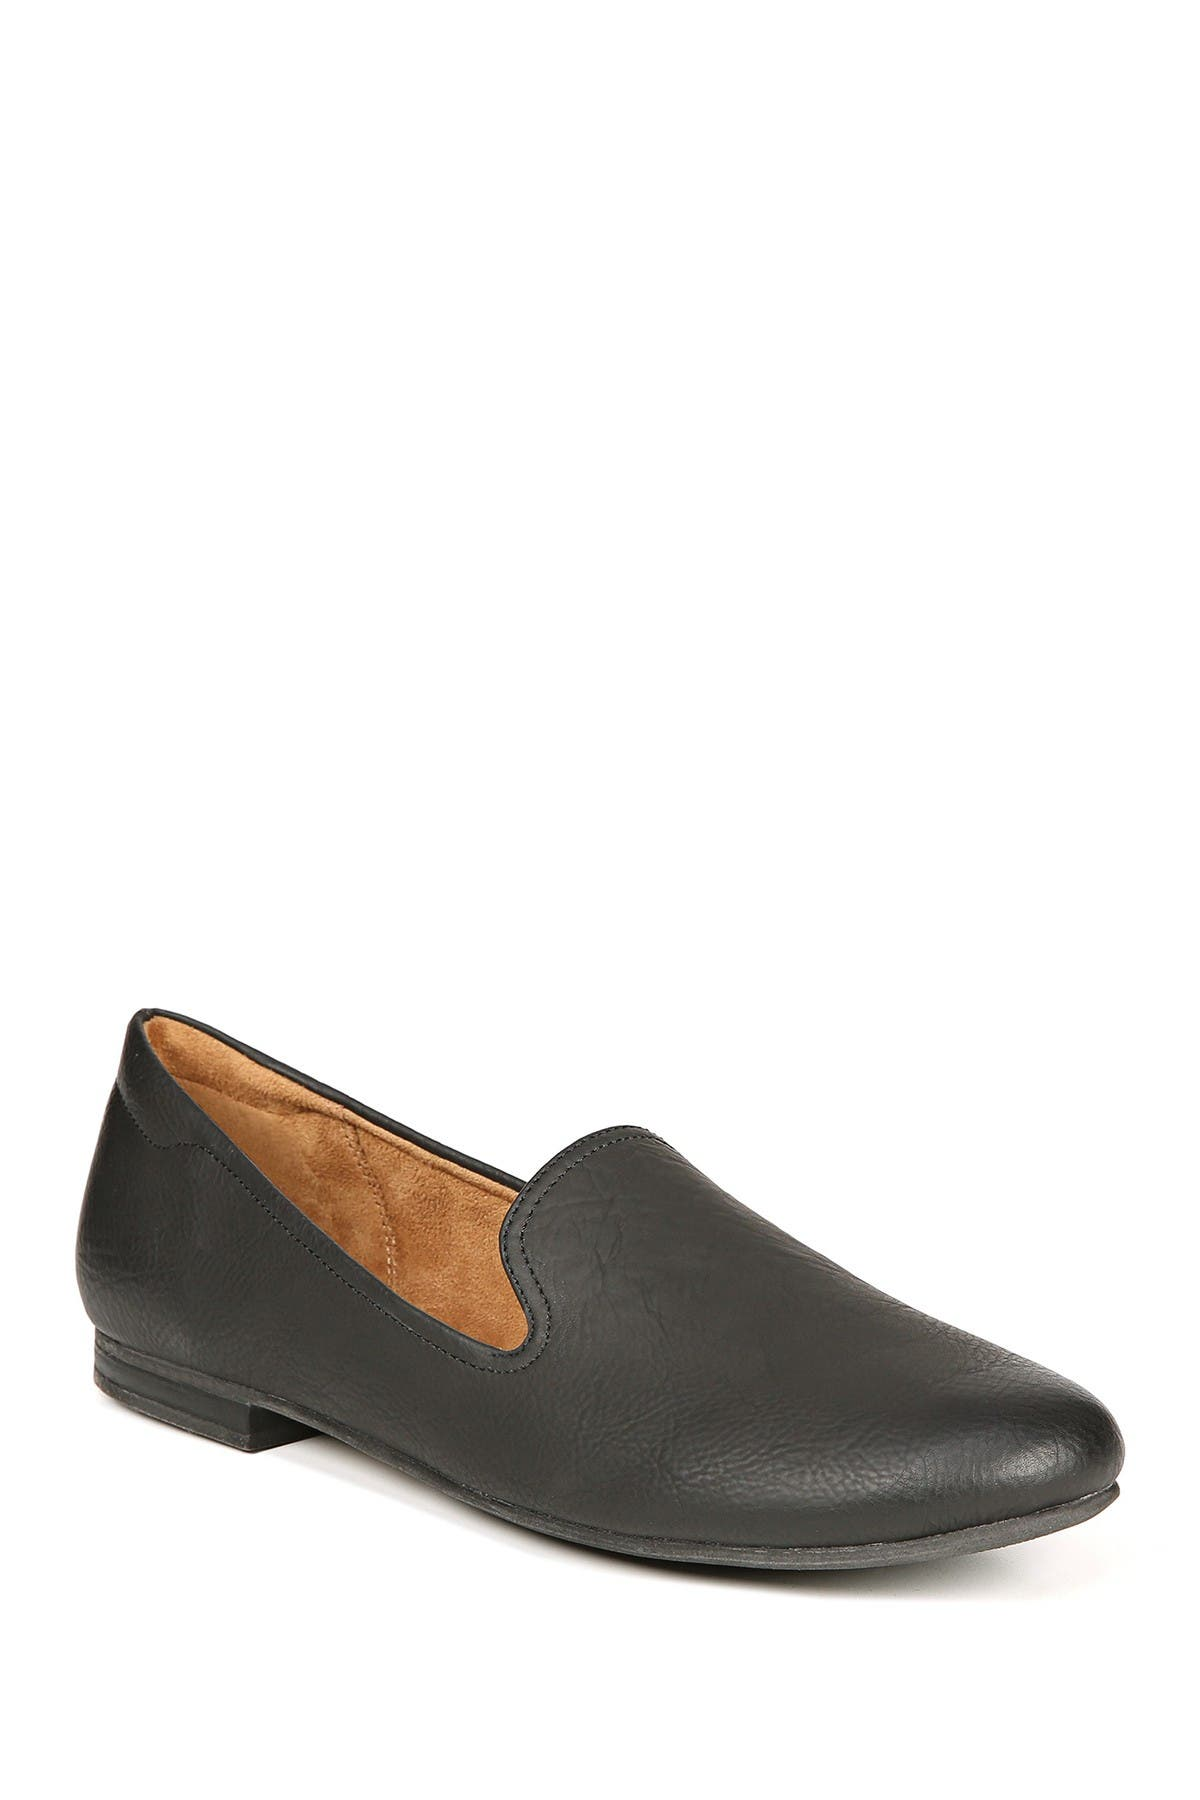 Image of SOUL Naturalizer Alexis Slip-On Loafer